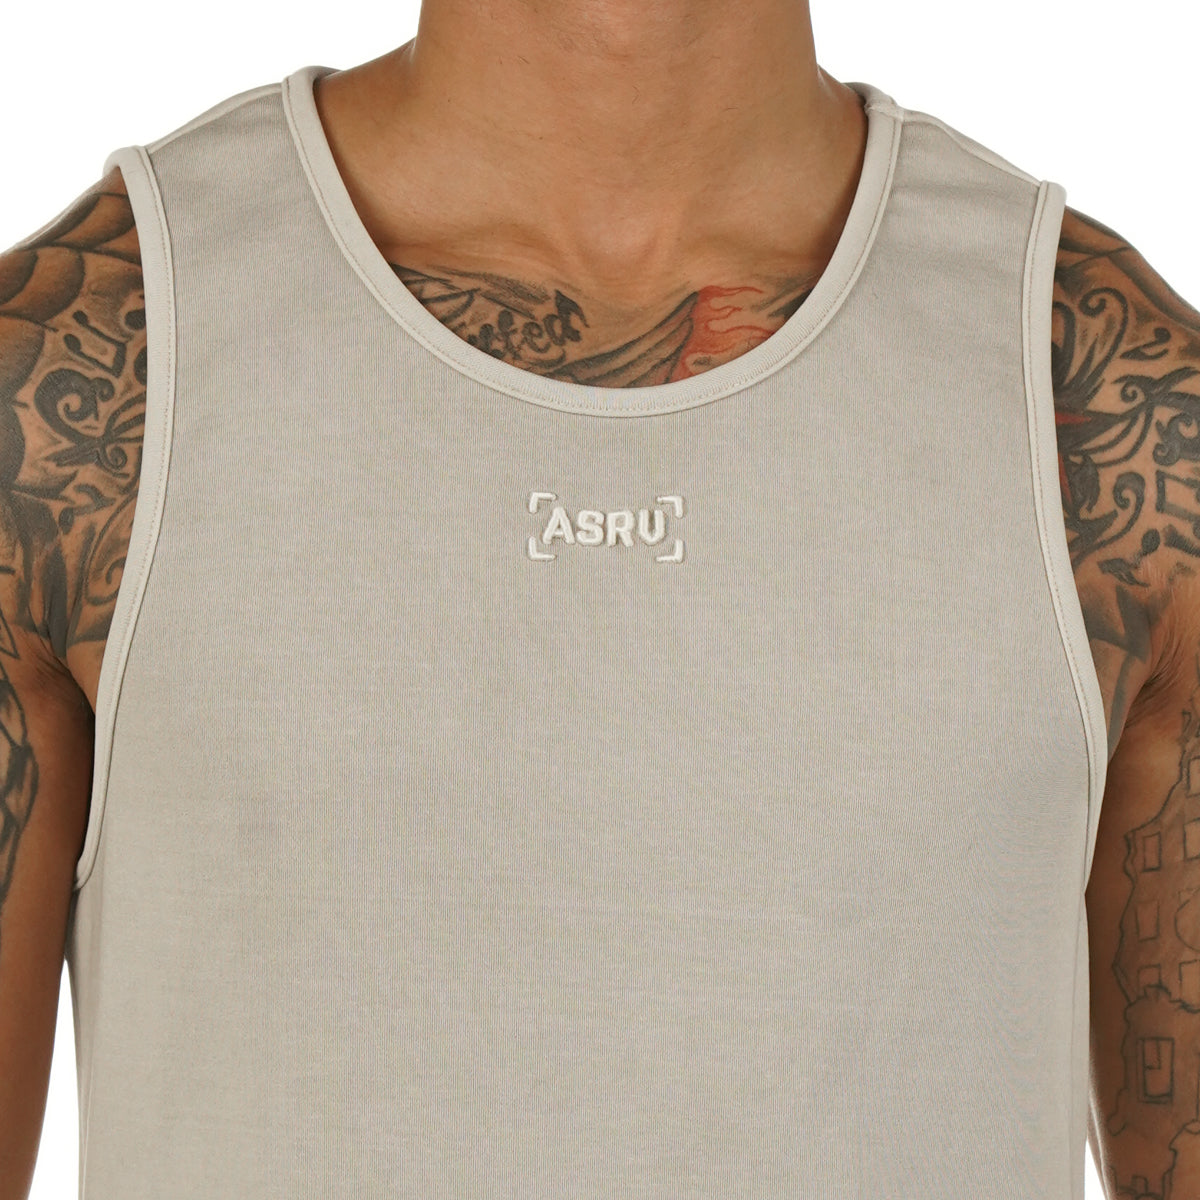 0272. SilverPlus® Garment-Dyed Tank - Faded Off-White